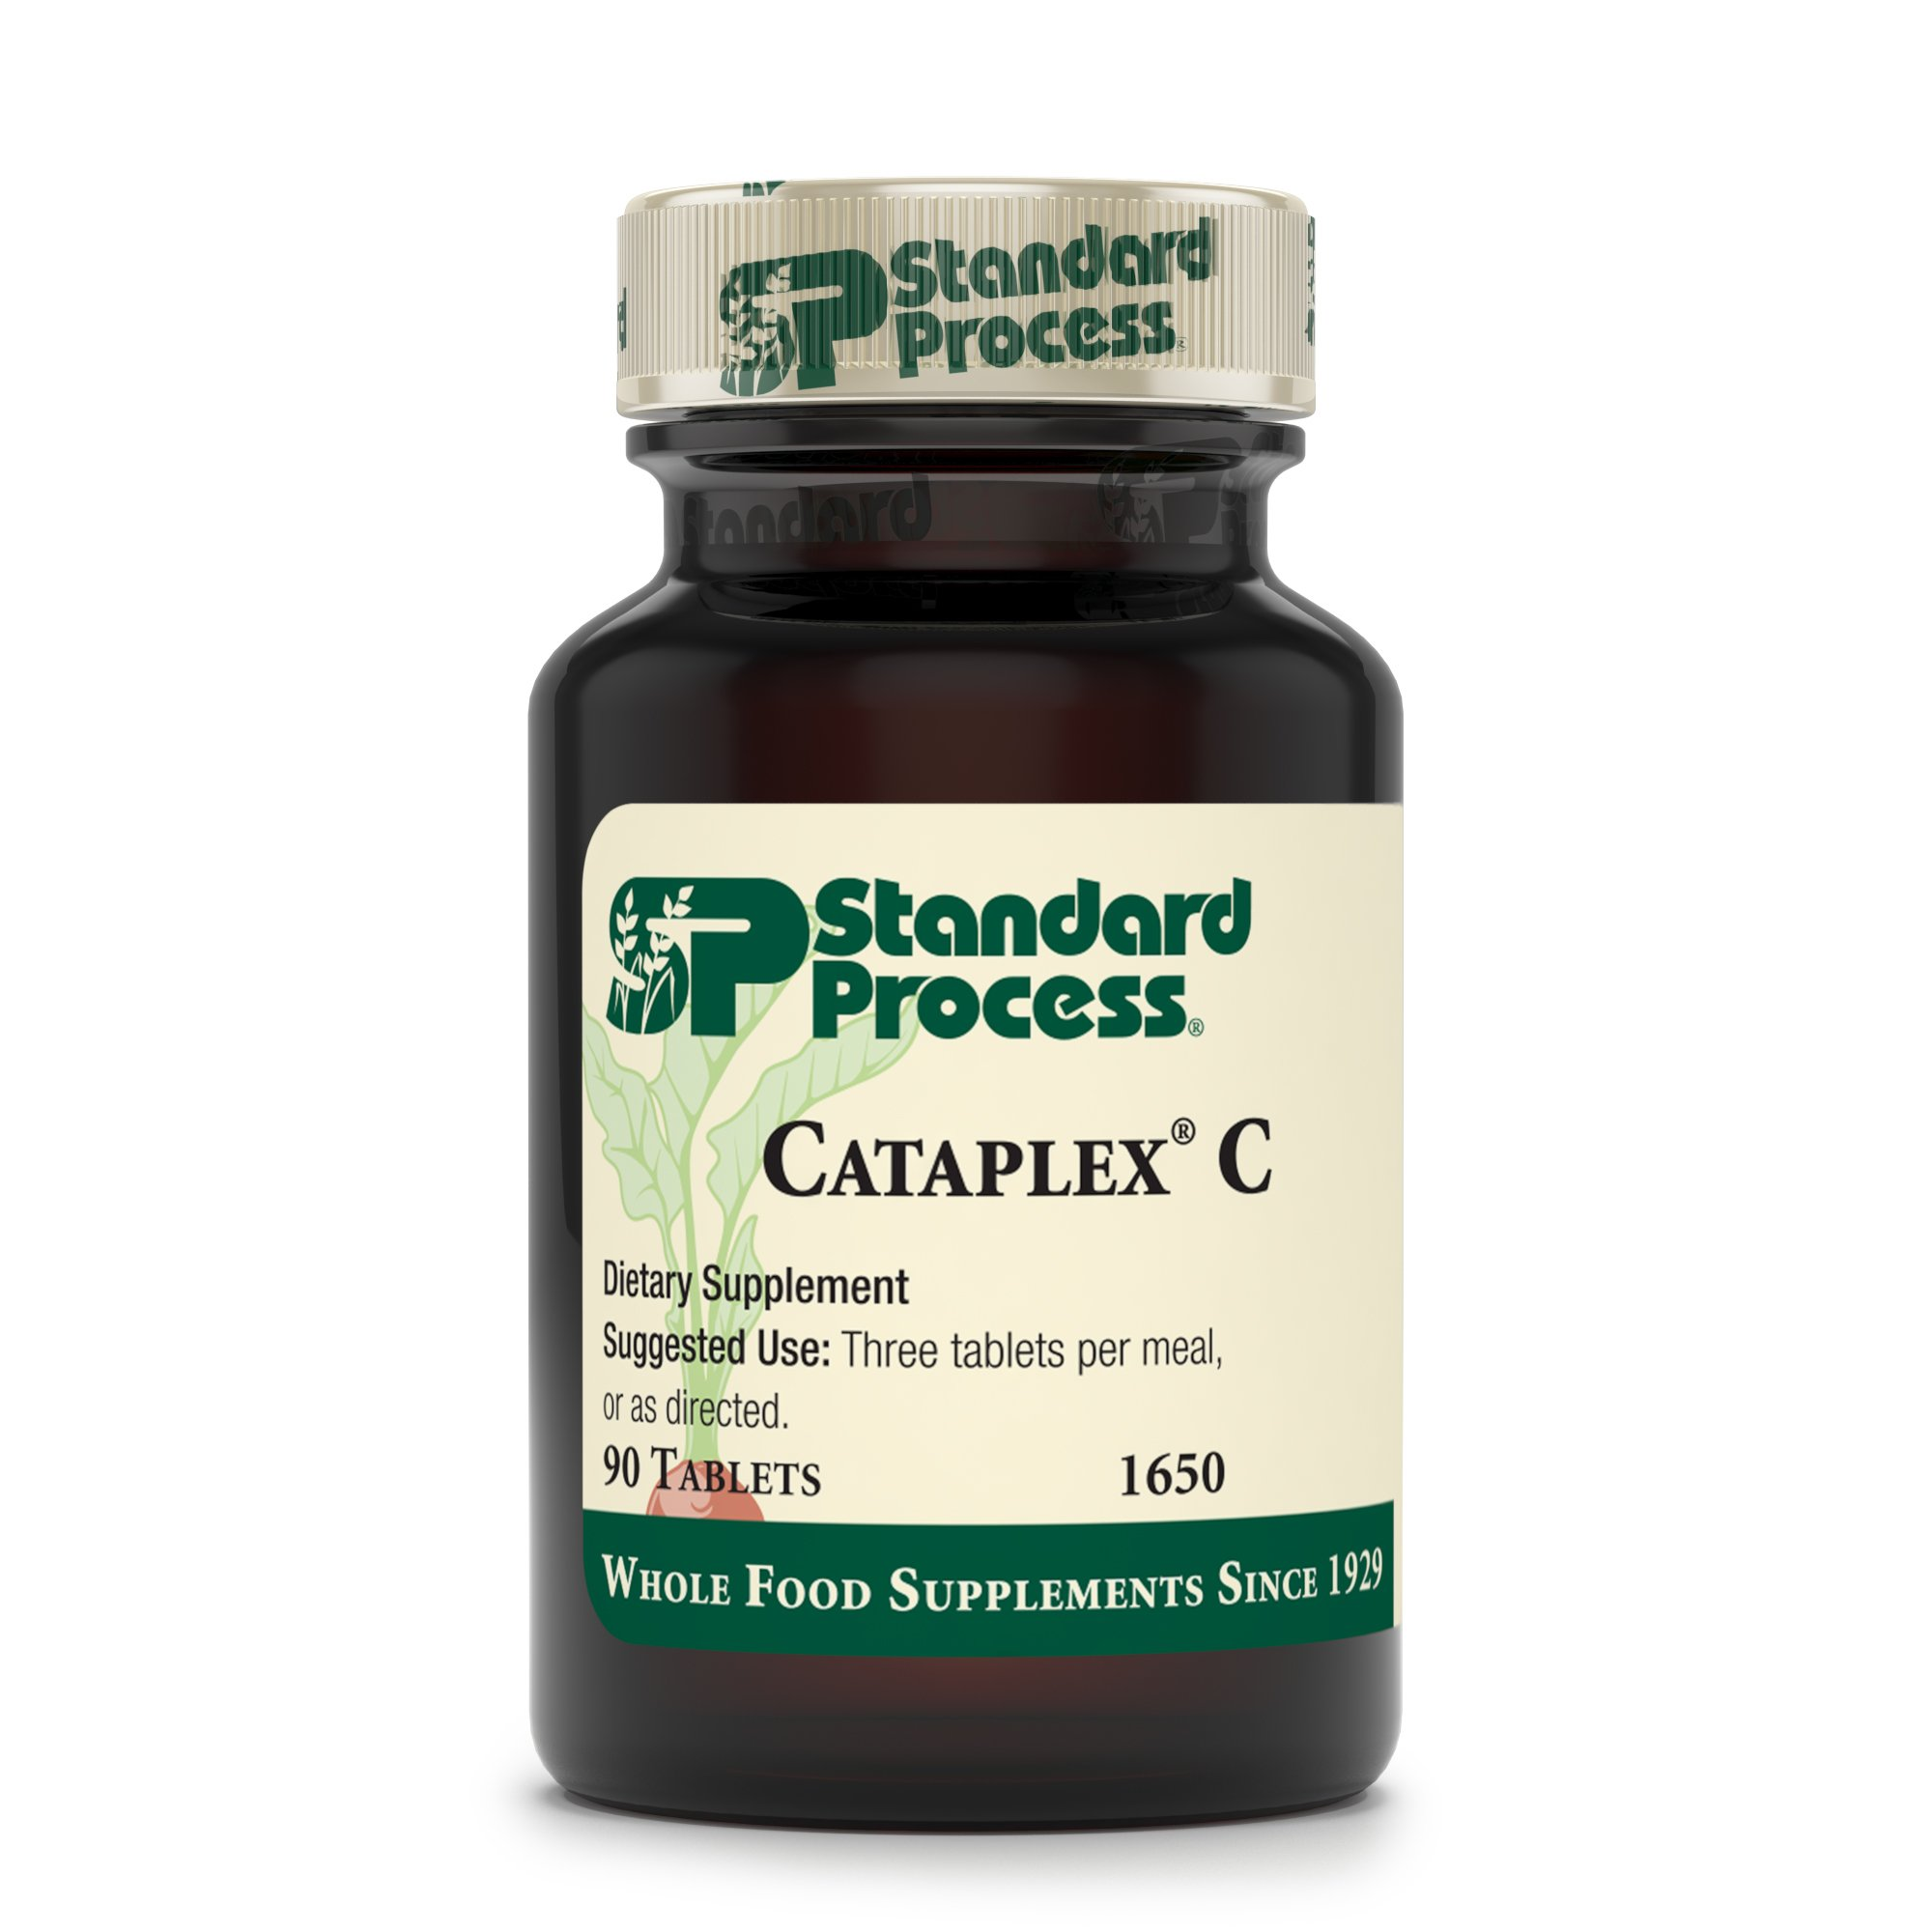 Standard Process - Cataplex C - Immune System Response Supplement, 17 mg Vitamin C, 30 mg Calcium, Supports Bone Health, Antioxidant Activity, Natural Collagen-Synthesis - 90 Tablets by Standard Process (Image #2)